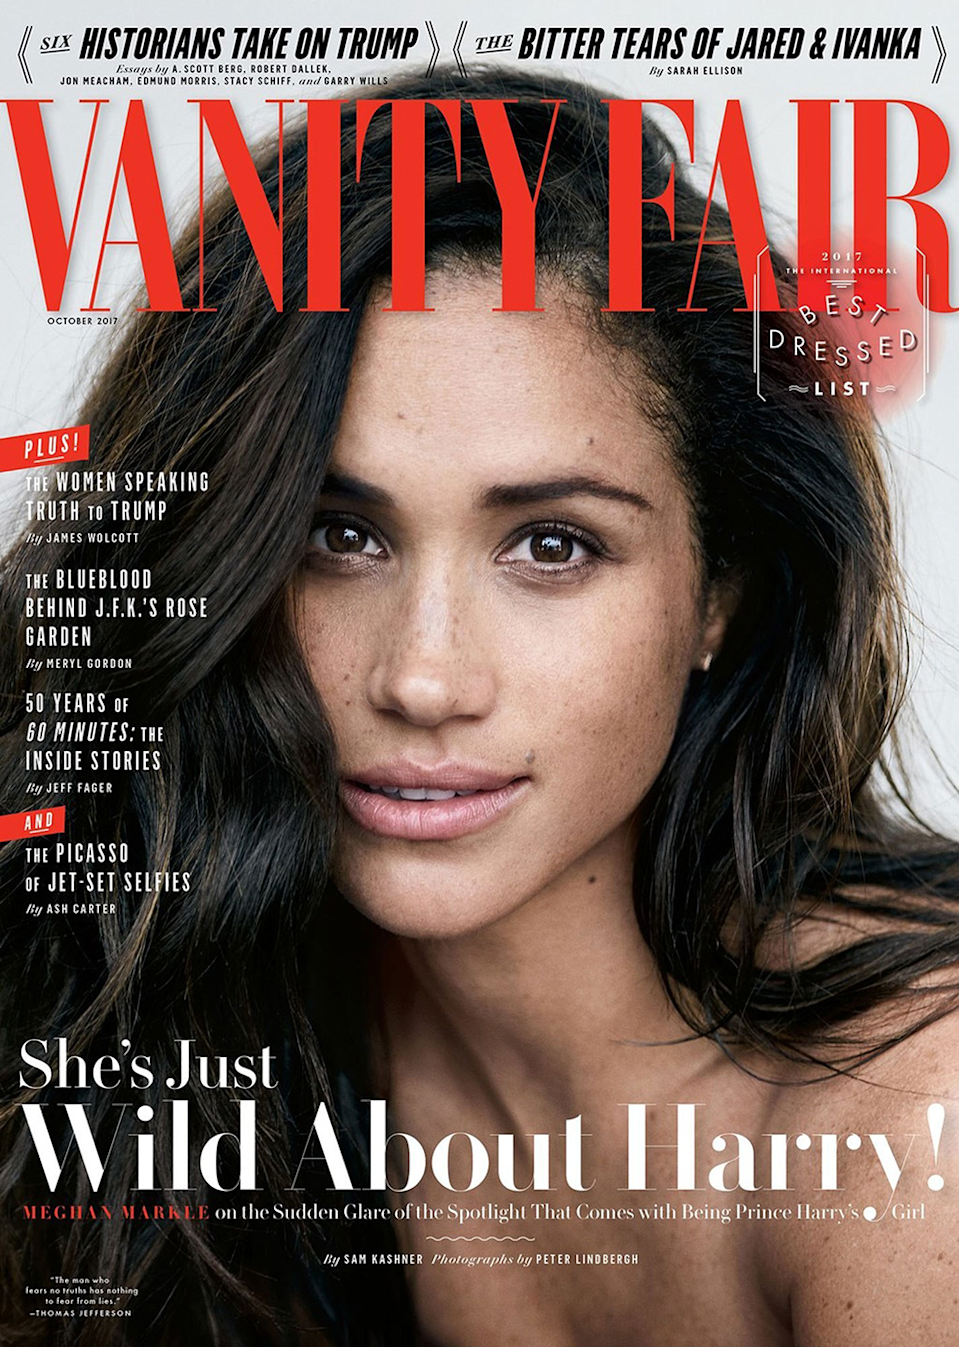 """<p>This technically happened before her engagement, but that's why it's even more unusual—royal girlfriends don't typically discuss their relationships <em>before </em>they're engaged or married. """"We're two people who are really happy and in love,"""" she told <em><a href=""""https://www.vanityfair.com/style/2017/09/meghan-markle-cover-story"""" rel=""""nofollow noopener"""" target=""""_blank"""" data-ylk=""""slk:Vanity Fair"""" class=""""link rapid-noclick-resp"""">Vanity Fair</a></em>. """"Nothing about me changed. I'm still the same person that I am, and I've never defined myself by my relationship.""""</p>"""